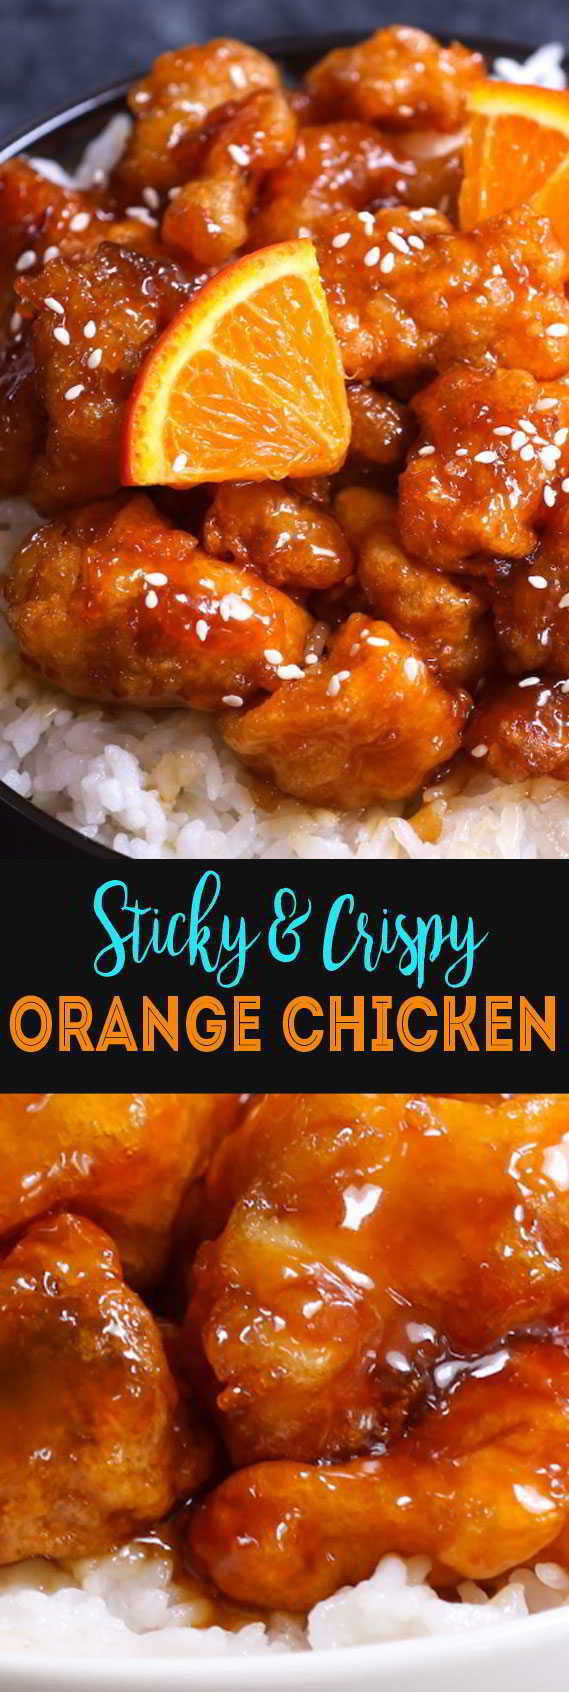 sticky-&-crispy-orange-chicken